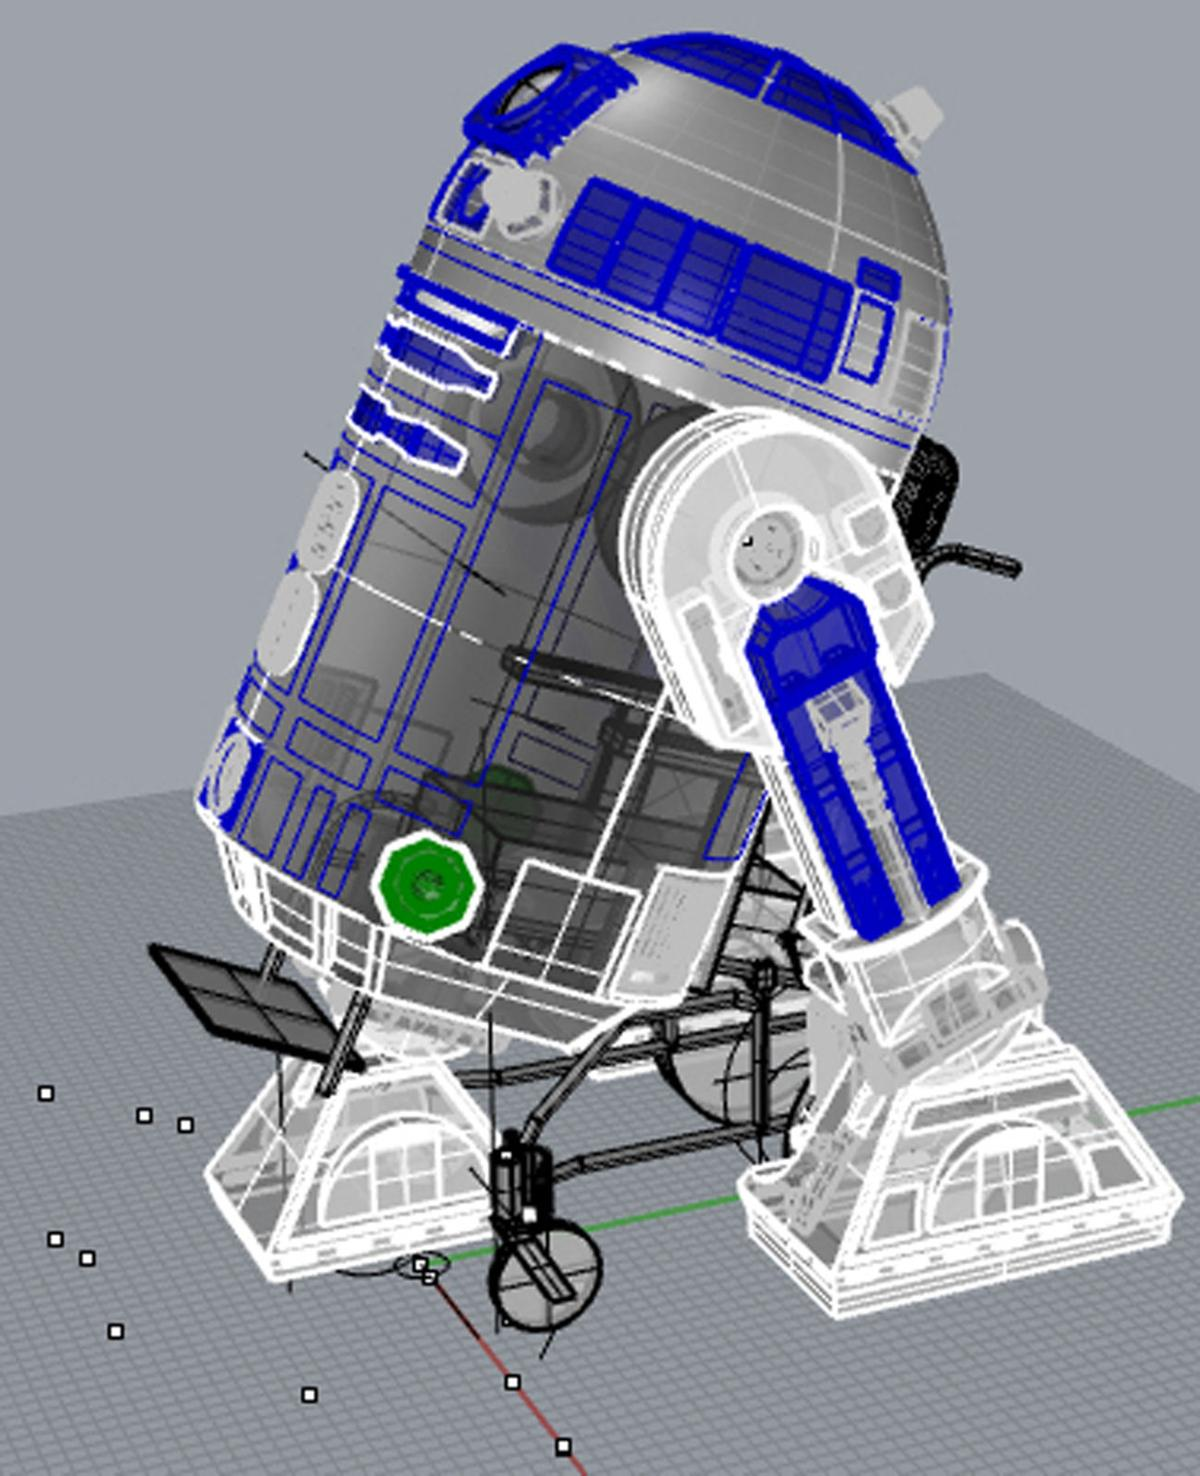 Local artist makes R2-D2 a reality for young boy | Etcetera ... on